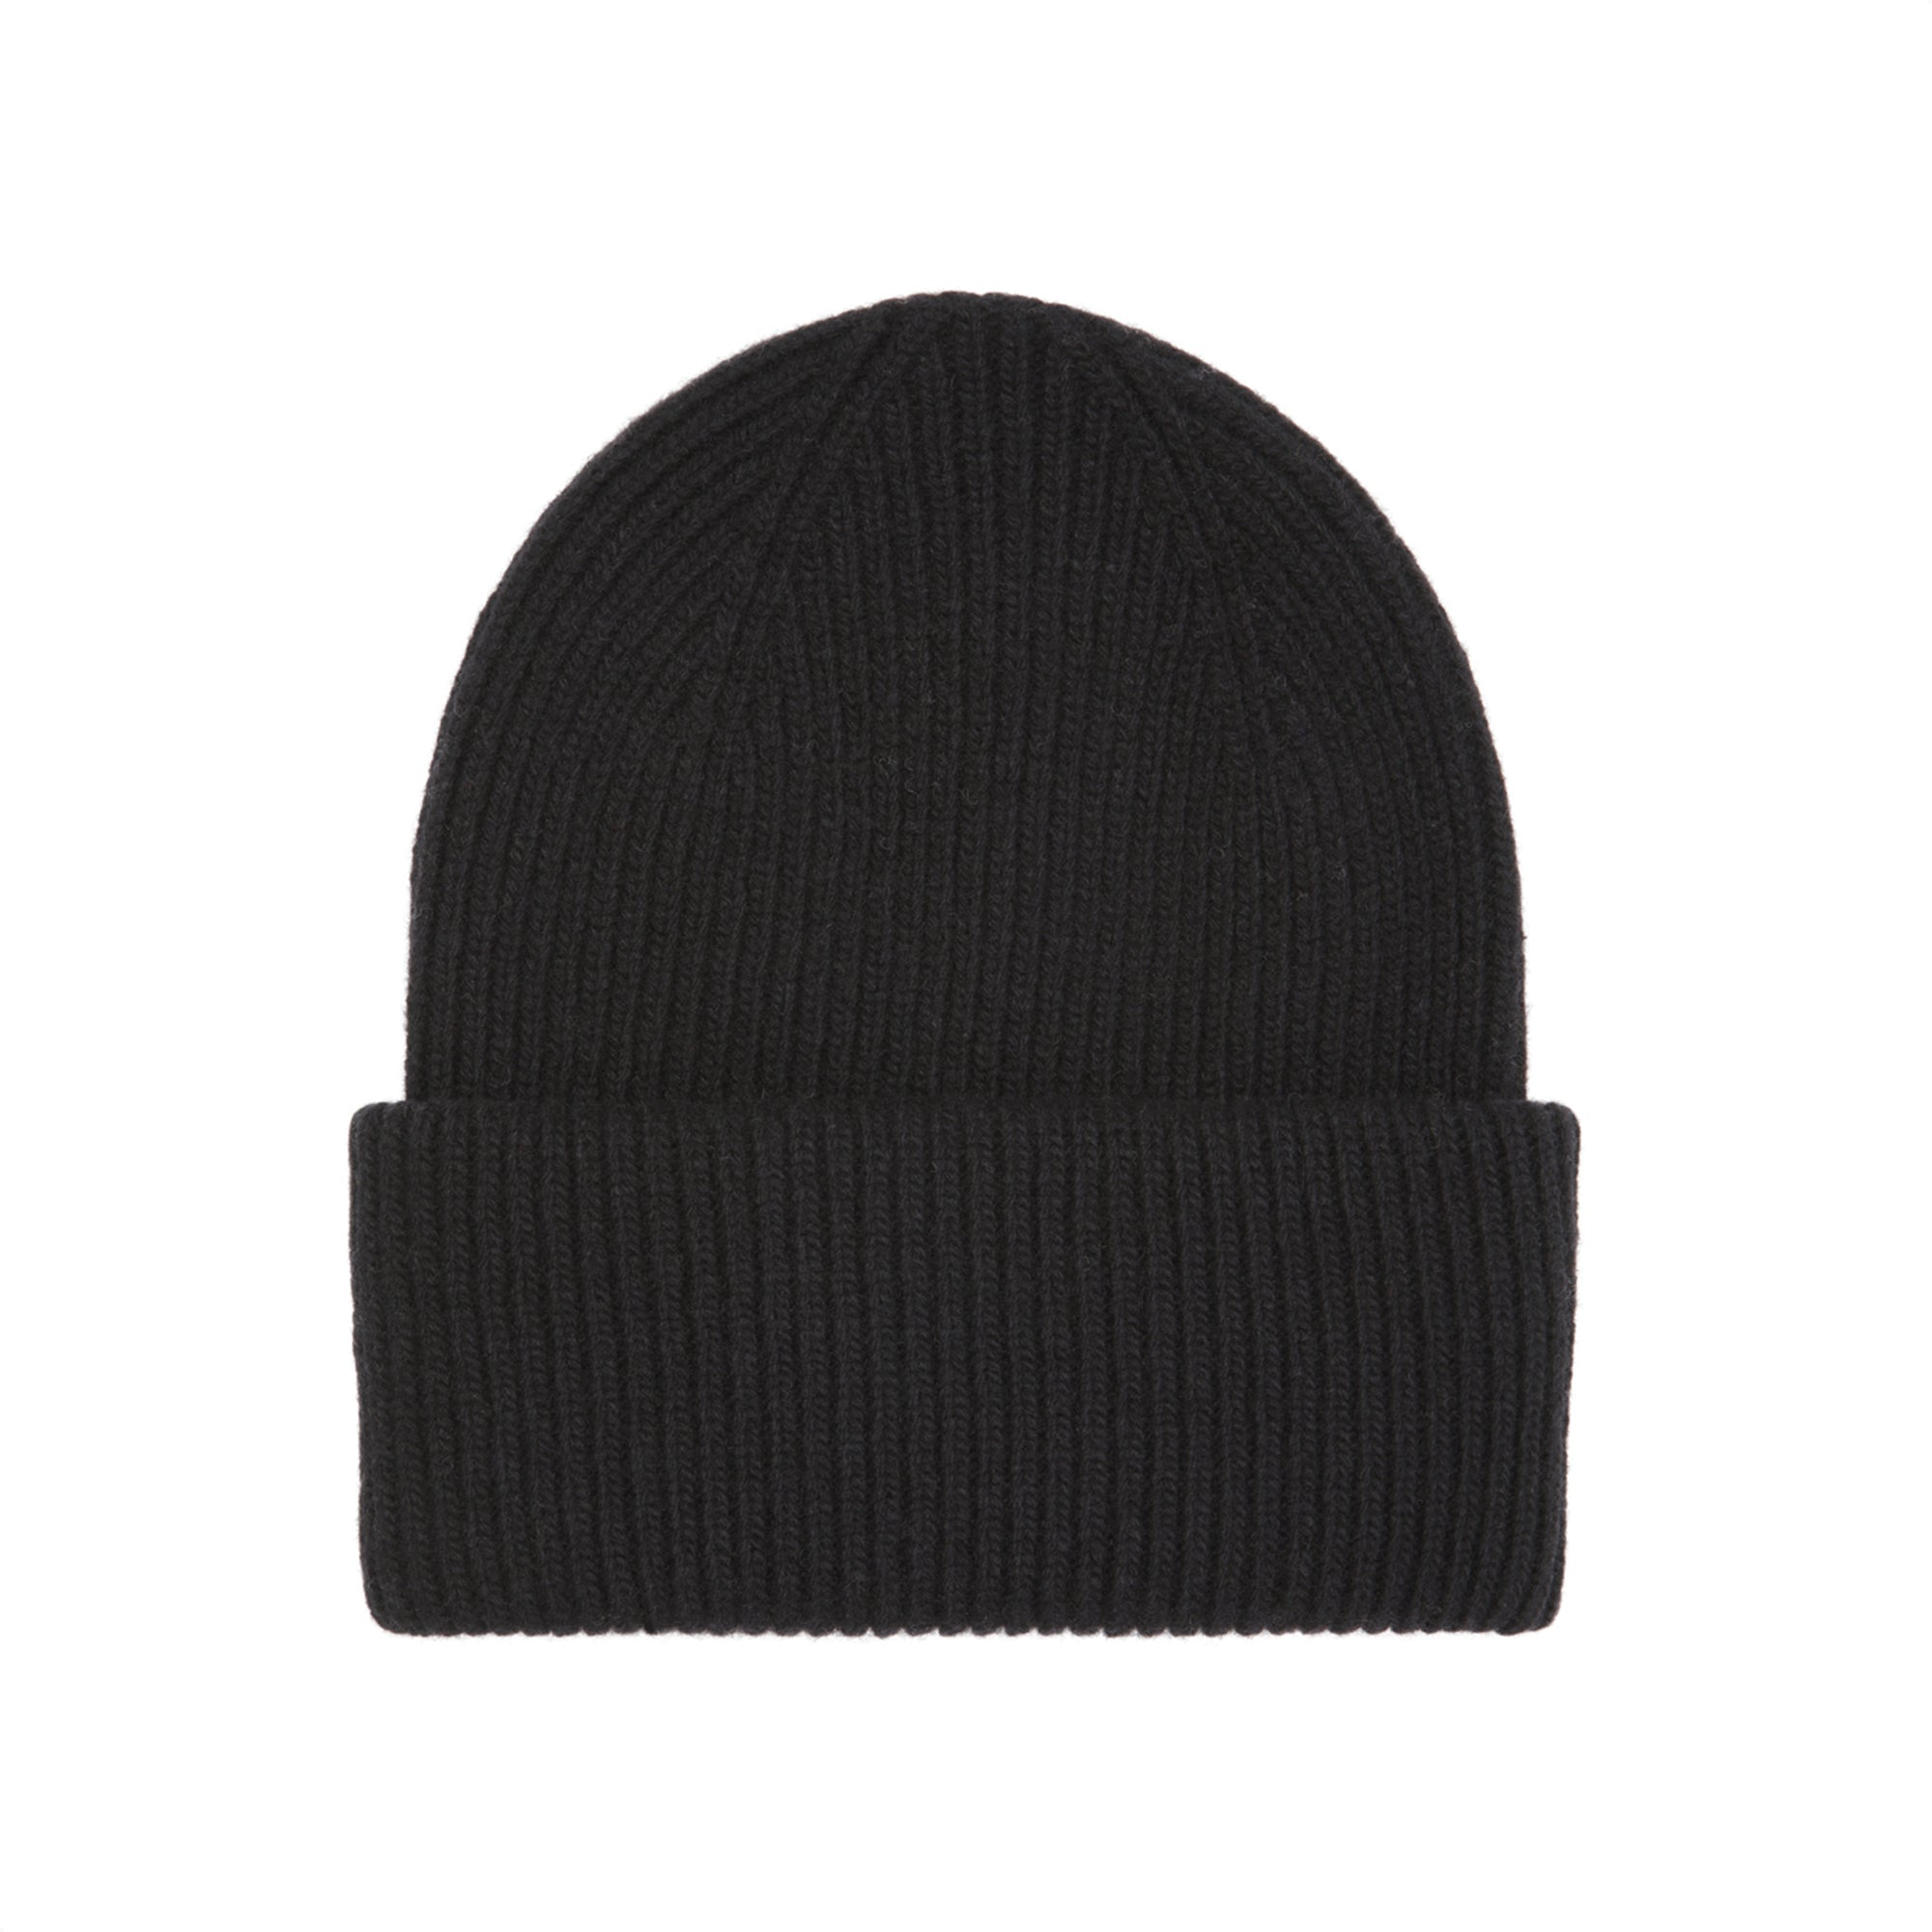 Colorful Standard Merino Wool Hat - black